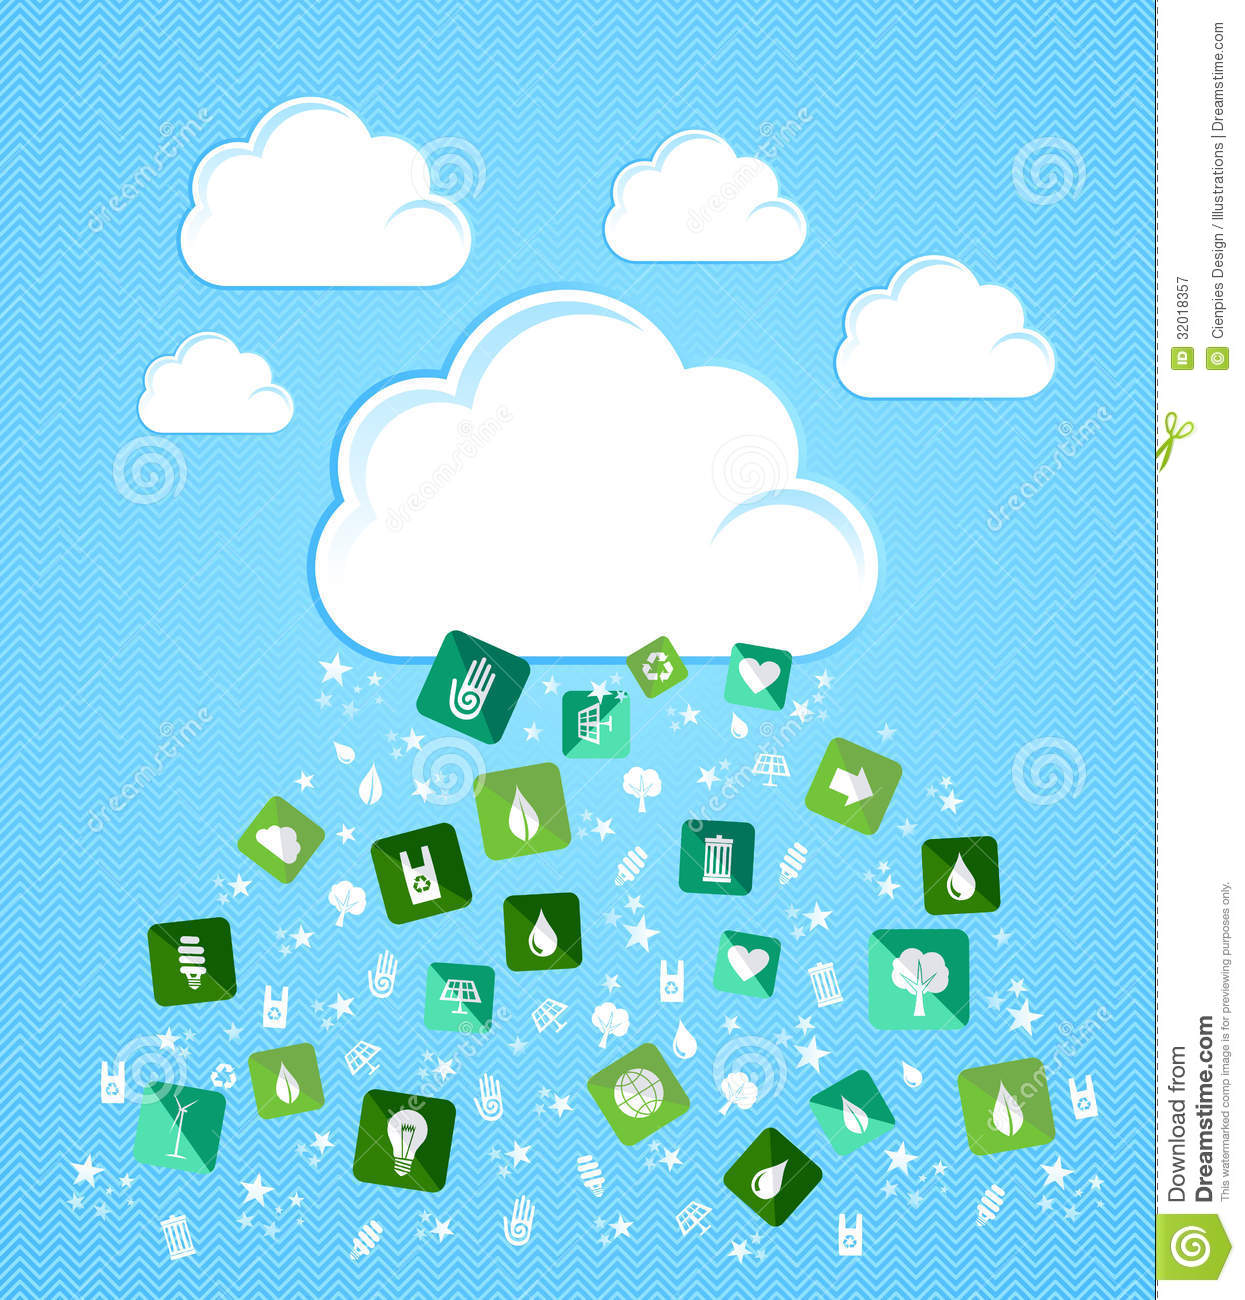 Cloud Computing Eco Friendly Icons Royalty Free Stock Photography ...